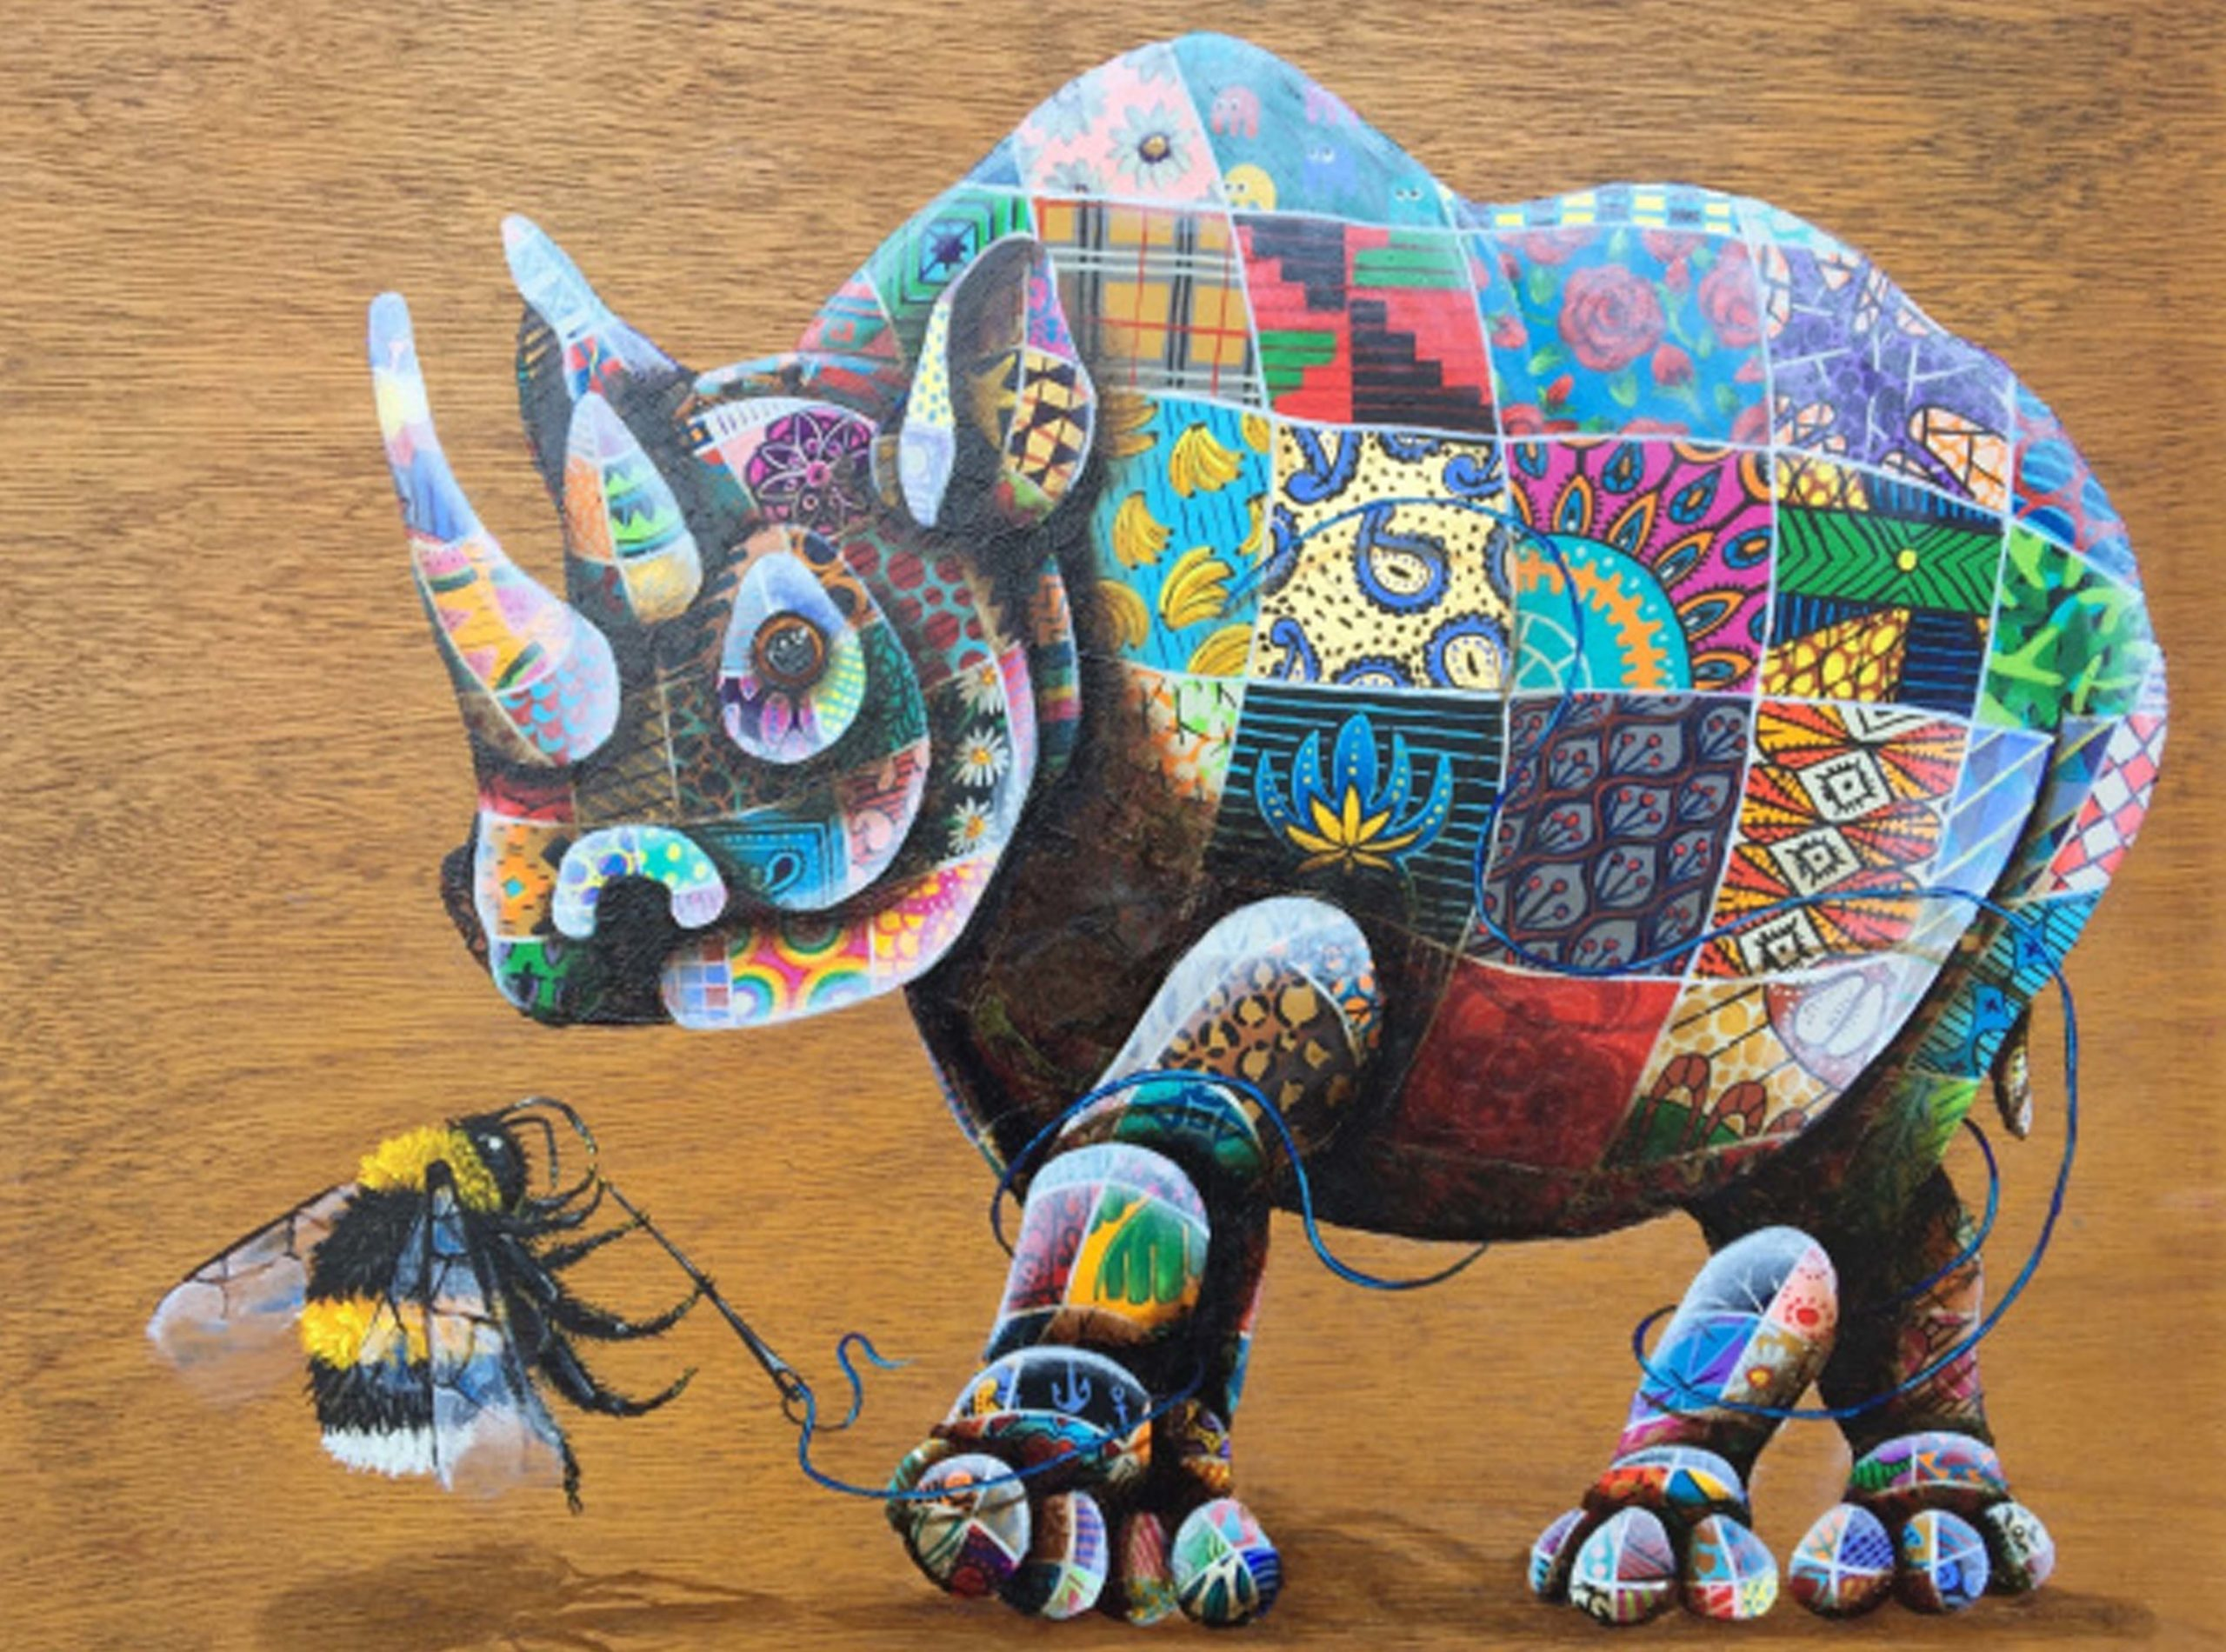 Rhino and Bee painted by Louis Masai Michel